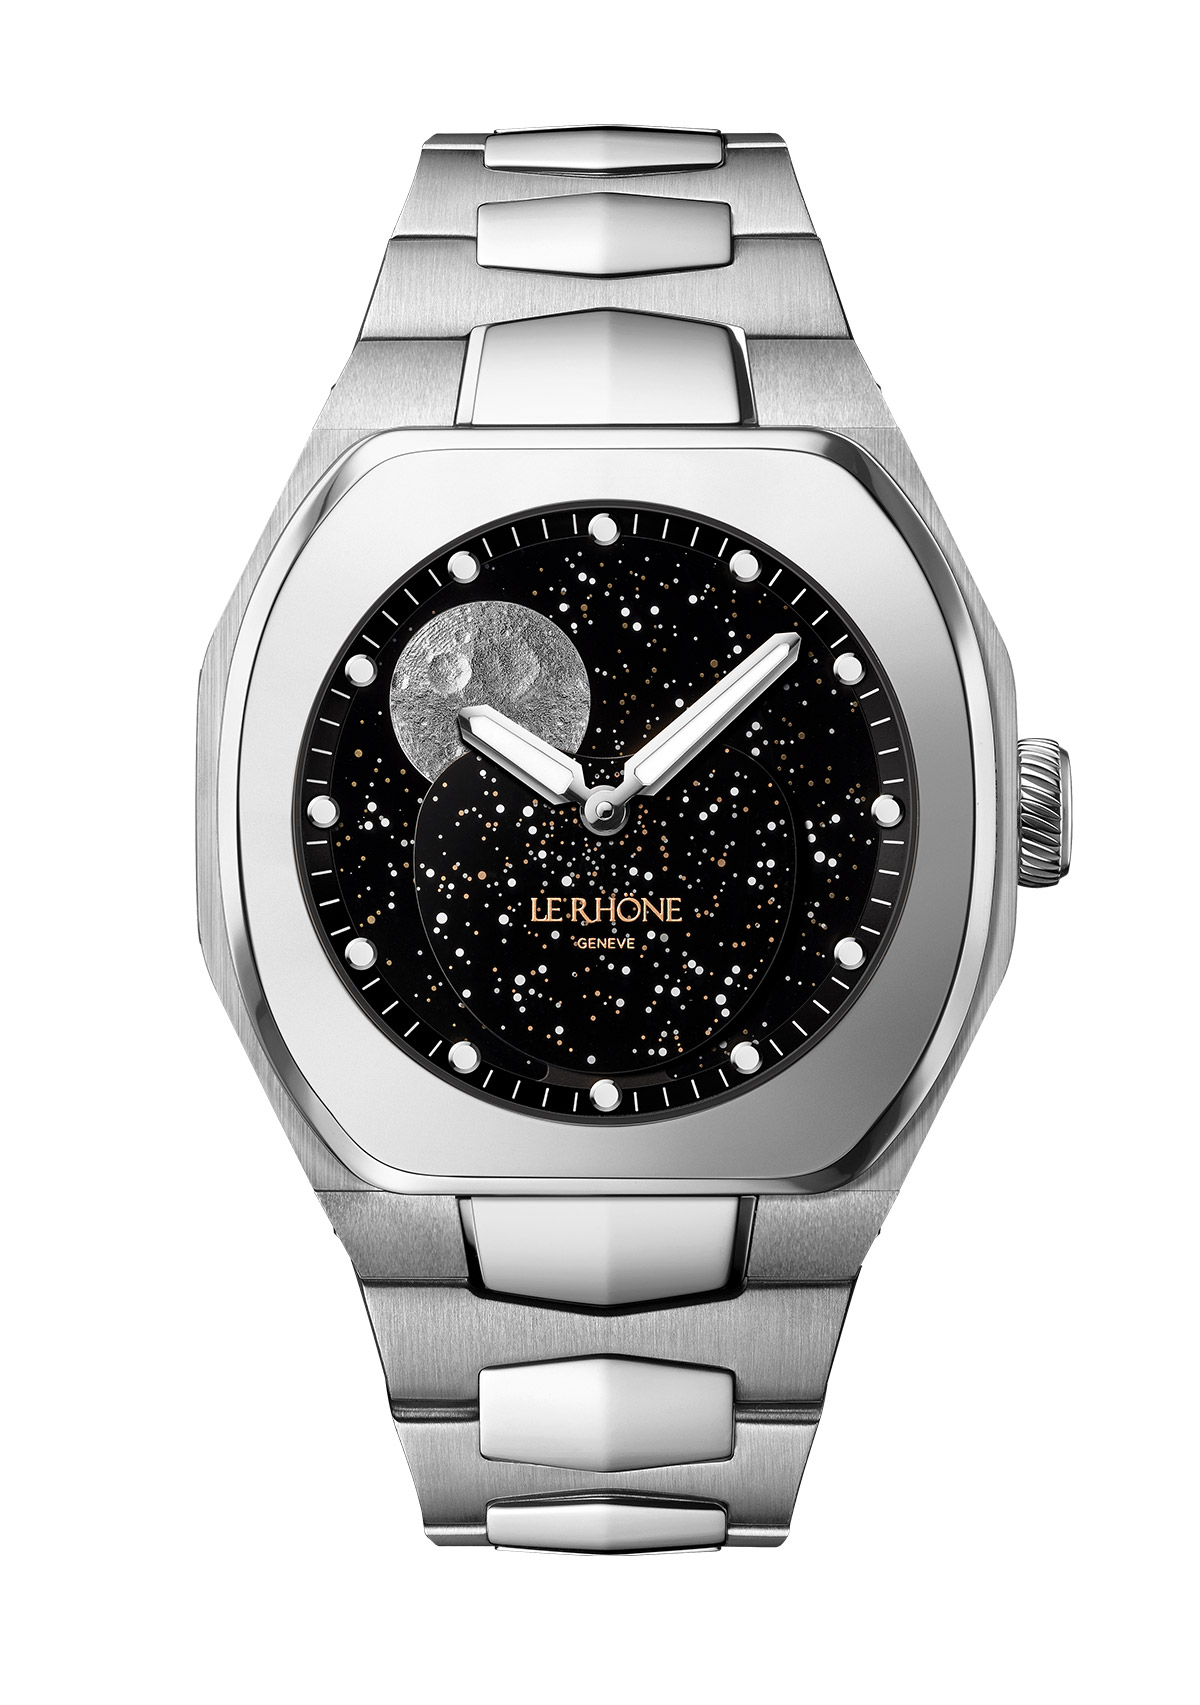 moon-41-le-rhone-watch-H3SS091-1-S00D